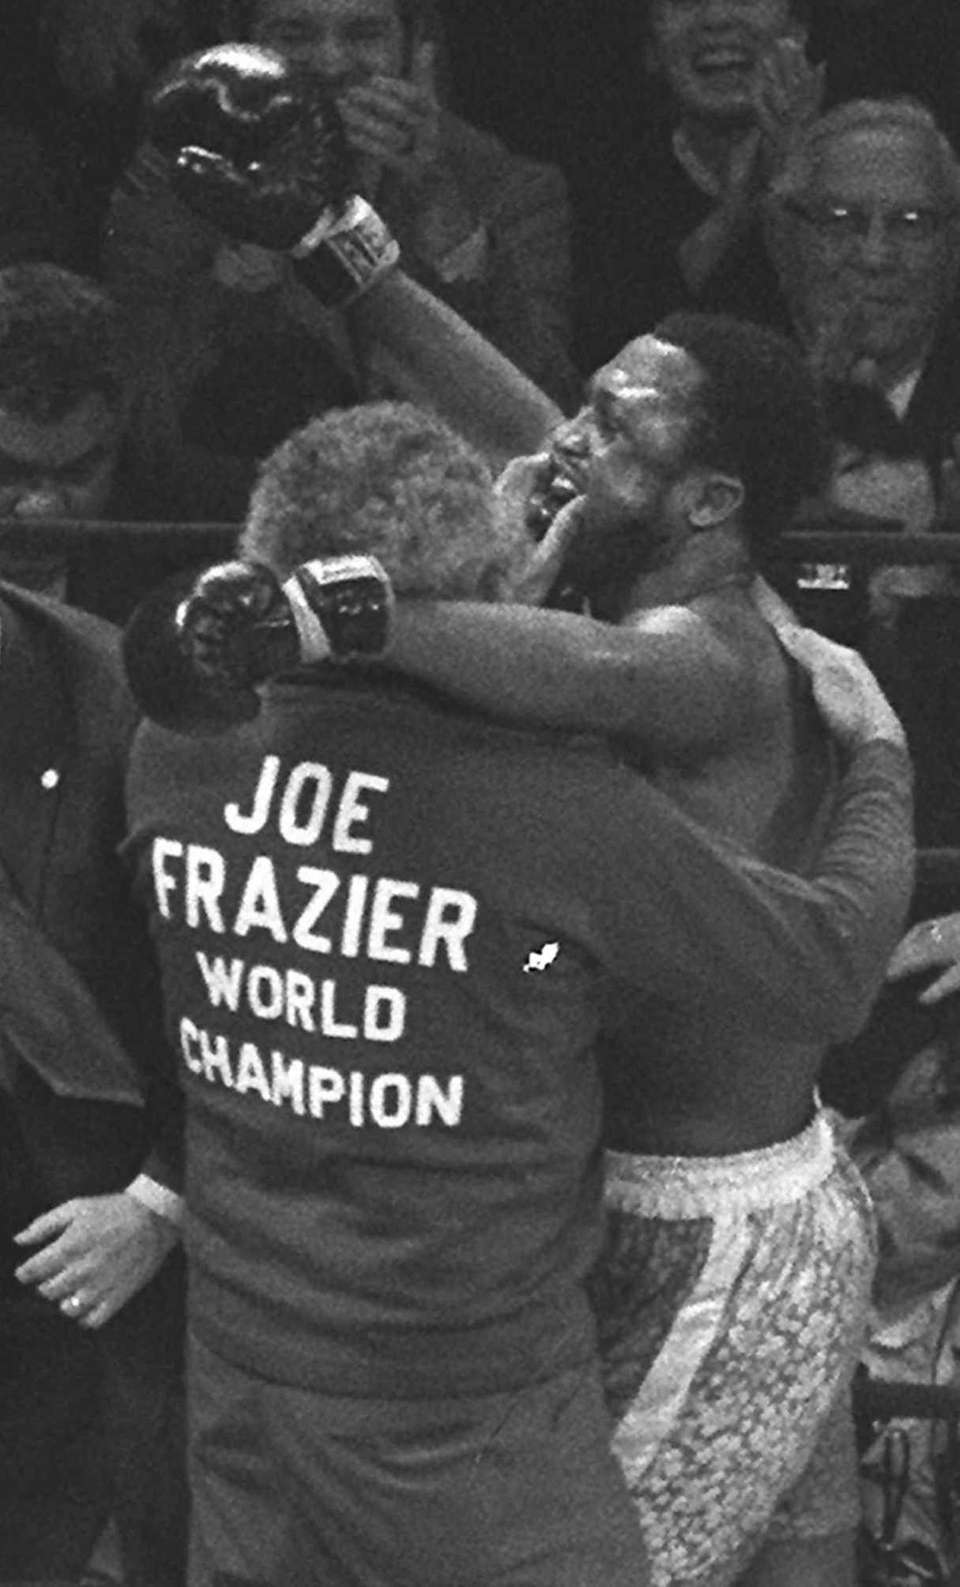 Joe Frazier, right, is hugged by his manager,